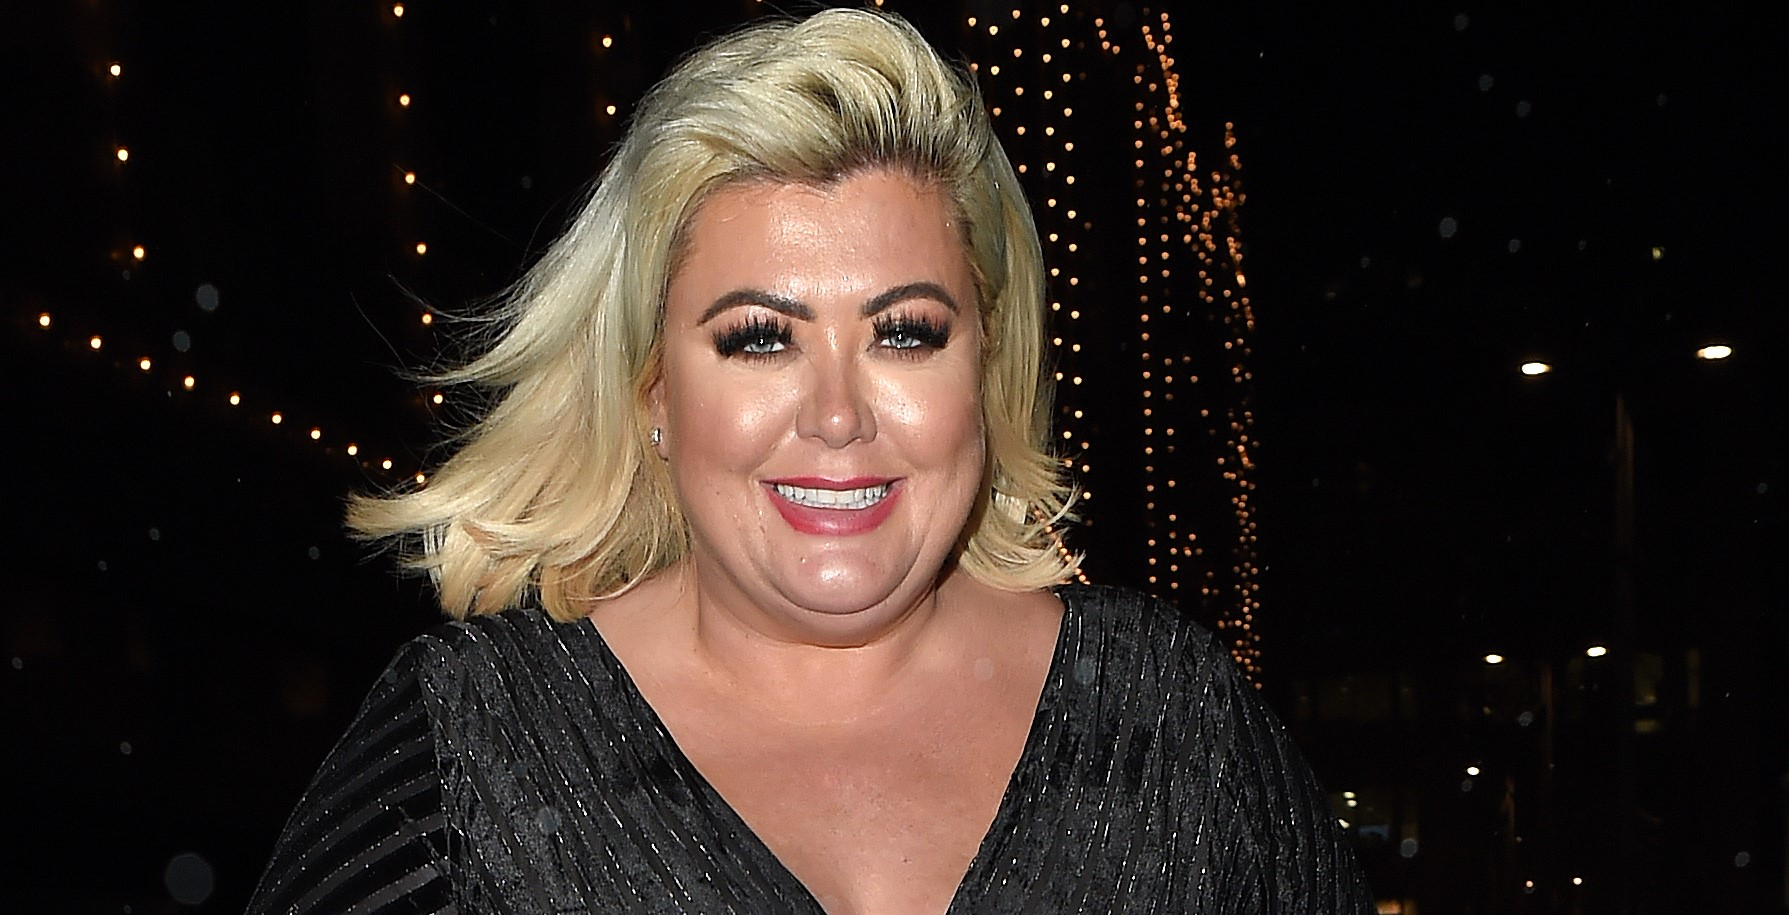 Gemma Collins suffers unfortunate wardrobe blunder as dress rips at awards ceremony